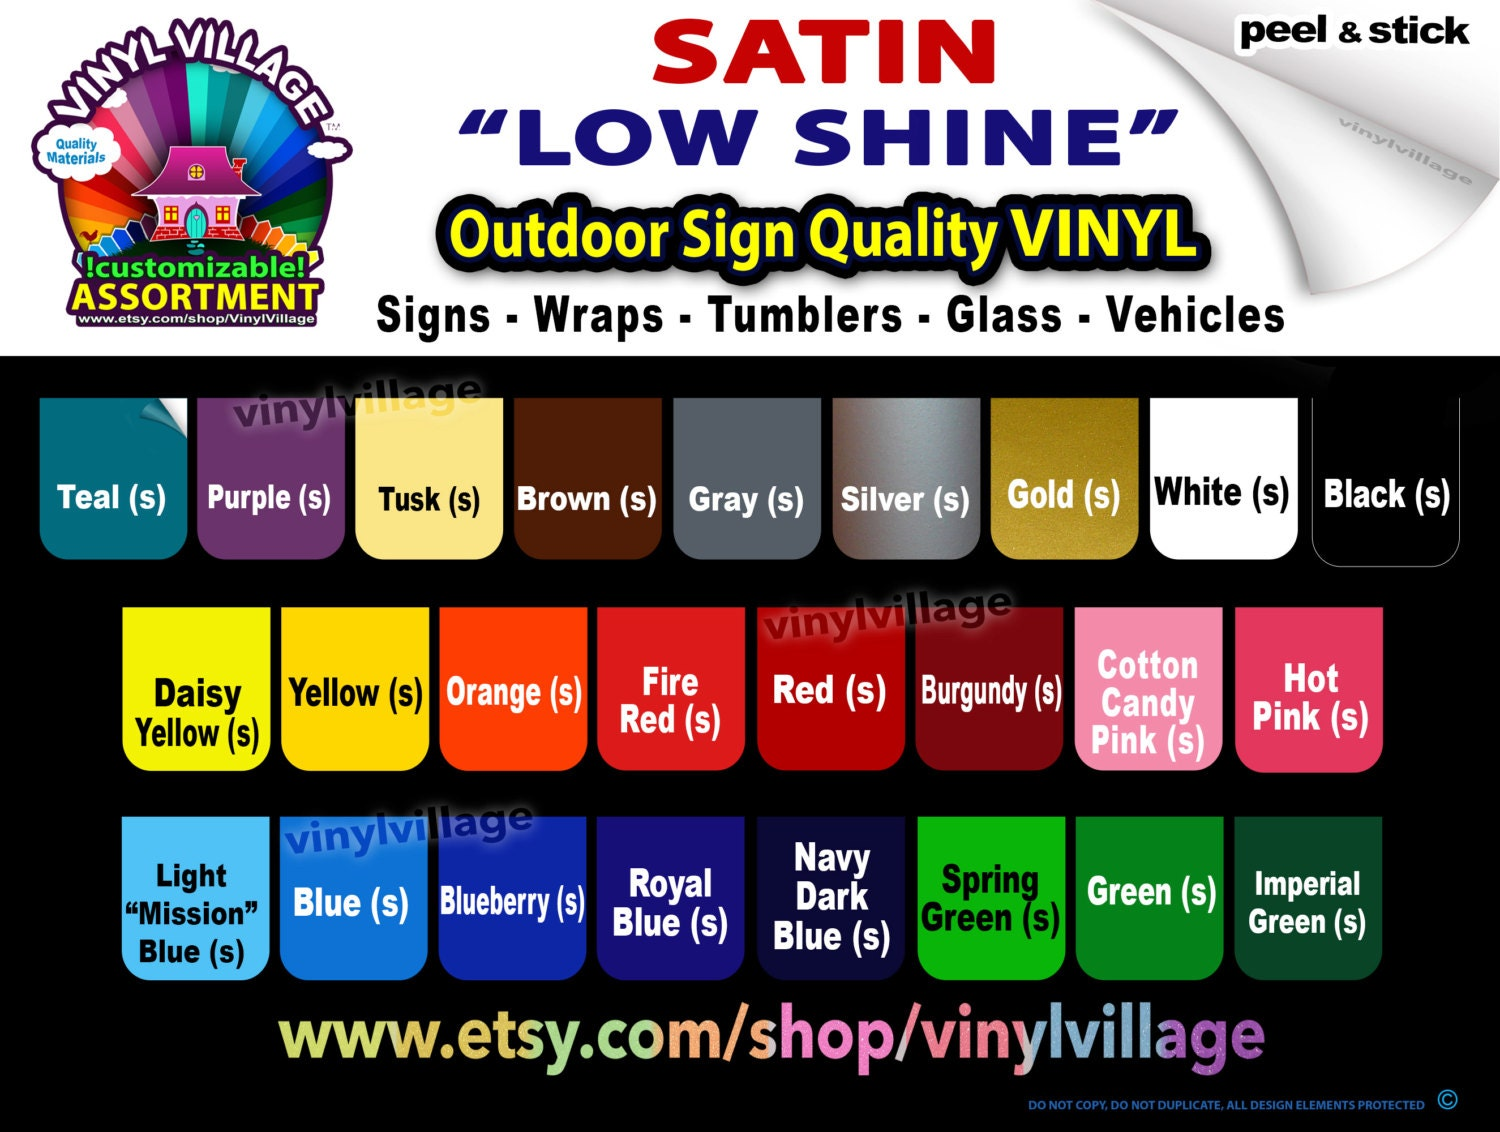 Inch Rolls Pack Adhesive Backed Vinyl For Cricut And - Custom vinyl adhesive signscustom diecut adhesive vinyl logo incolors applied to glass